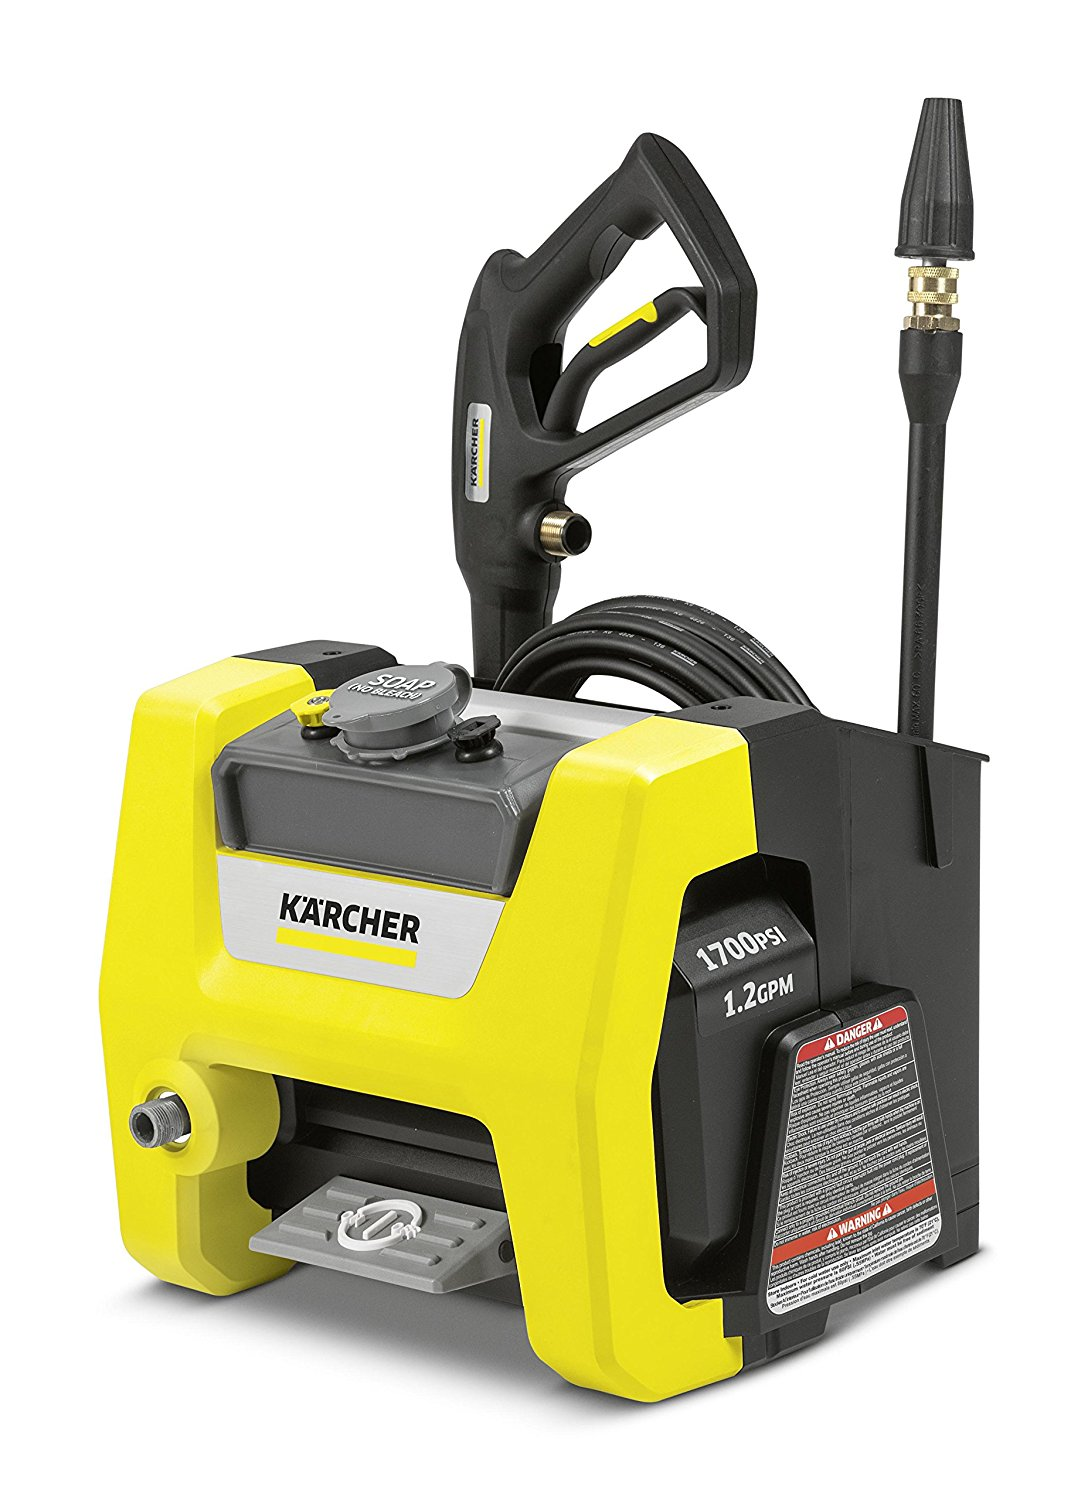 small karcher pressure washer